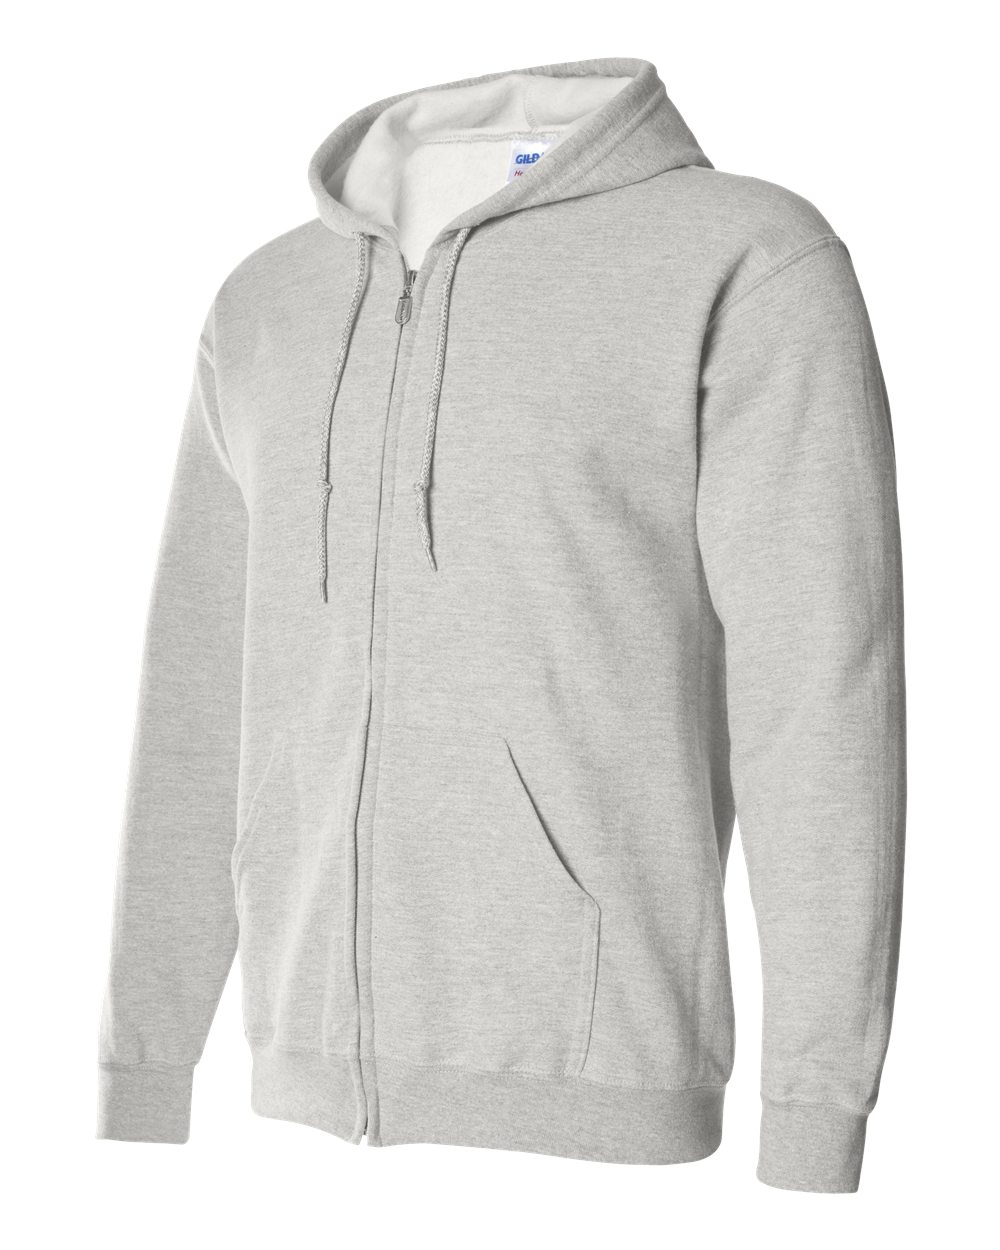 Gildan Heavy Blend Full Zip Hoodie Sweater GIL18600 Ash